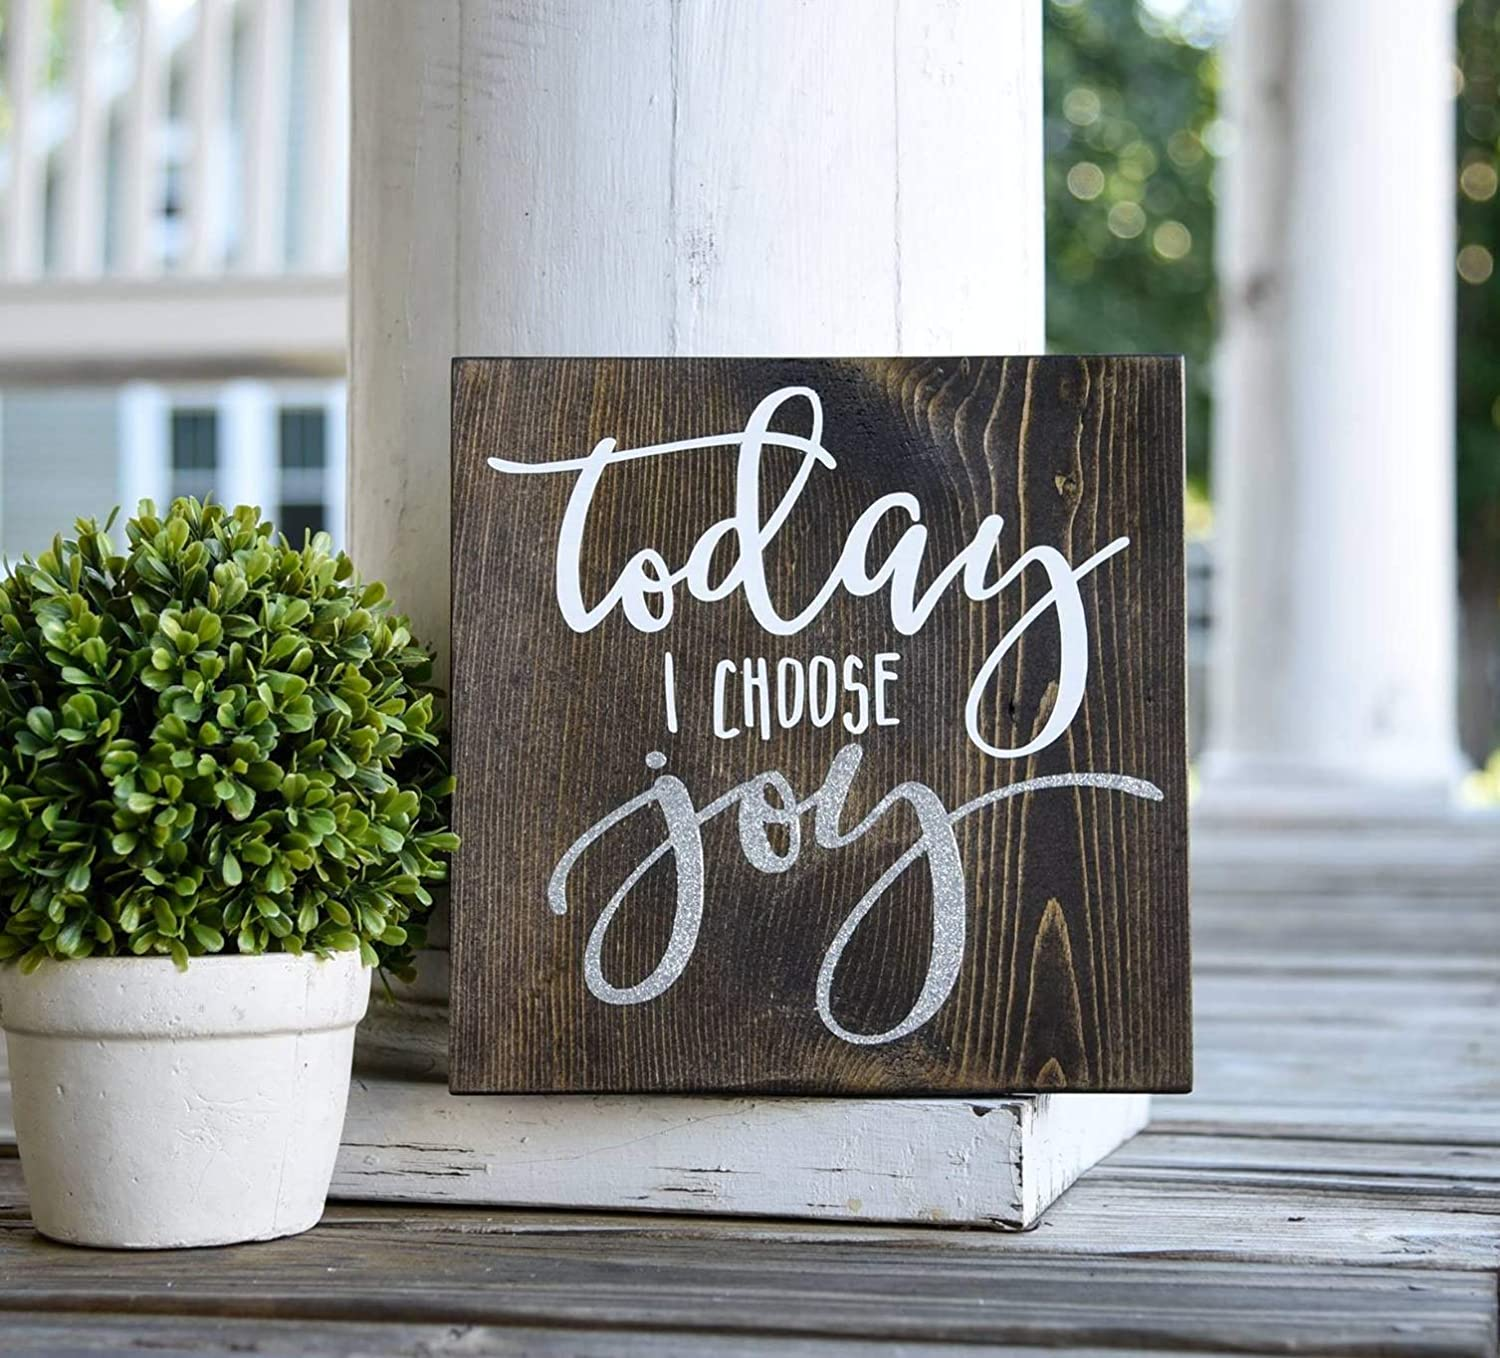 Today I Choose Joy Vintage Wood Sign Rustic Wooden Signs Wood Block Plaque Wall Decor Art Farmhouse Home Decoration Gift - 12x12 inches